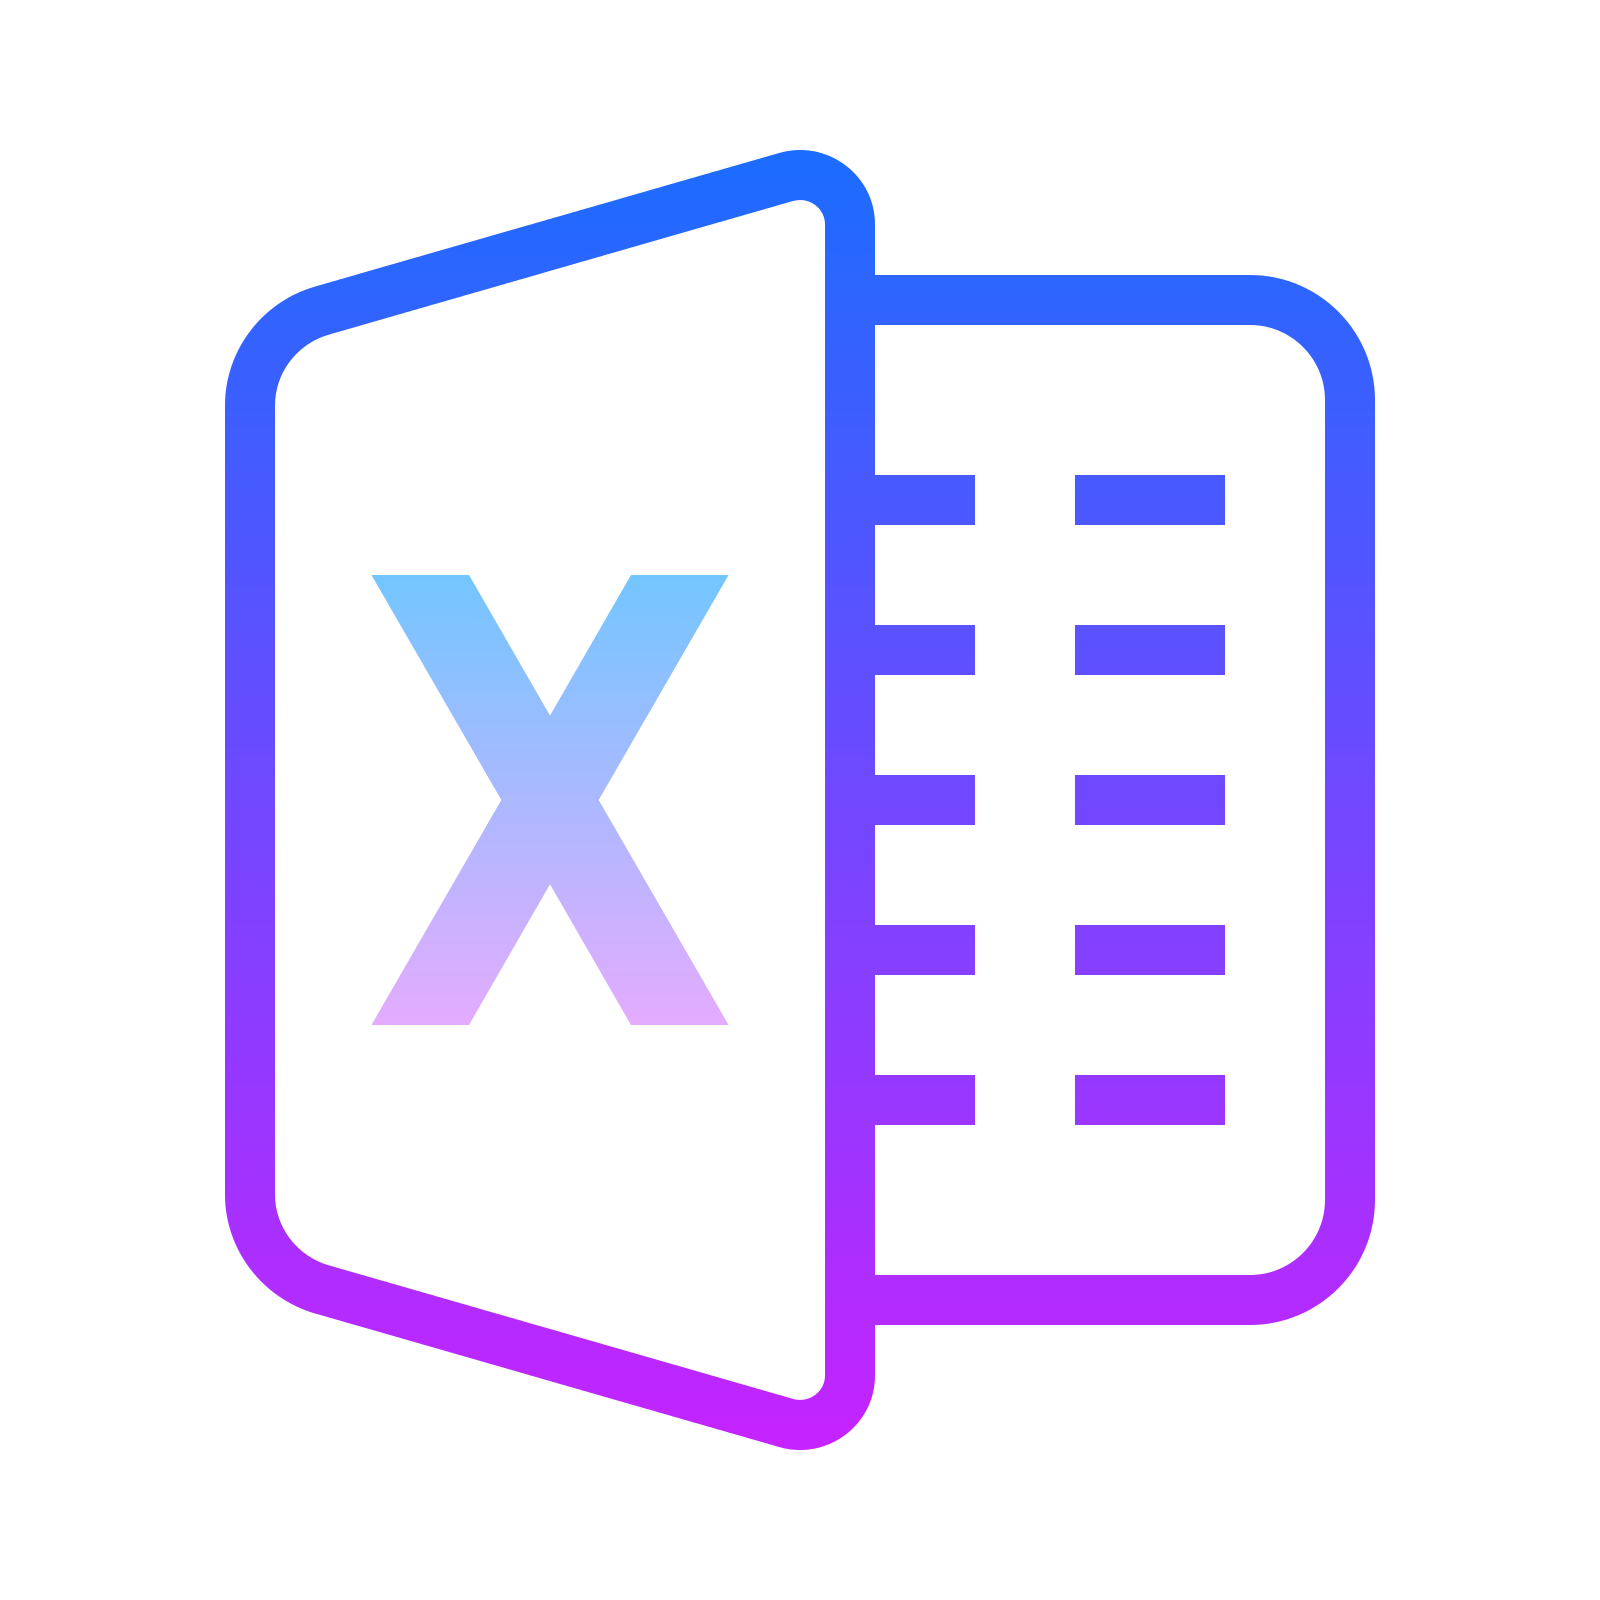 microsoft excel icon png logo 5